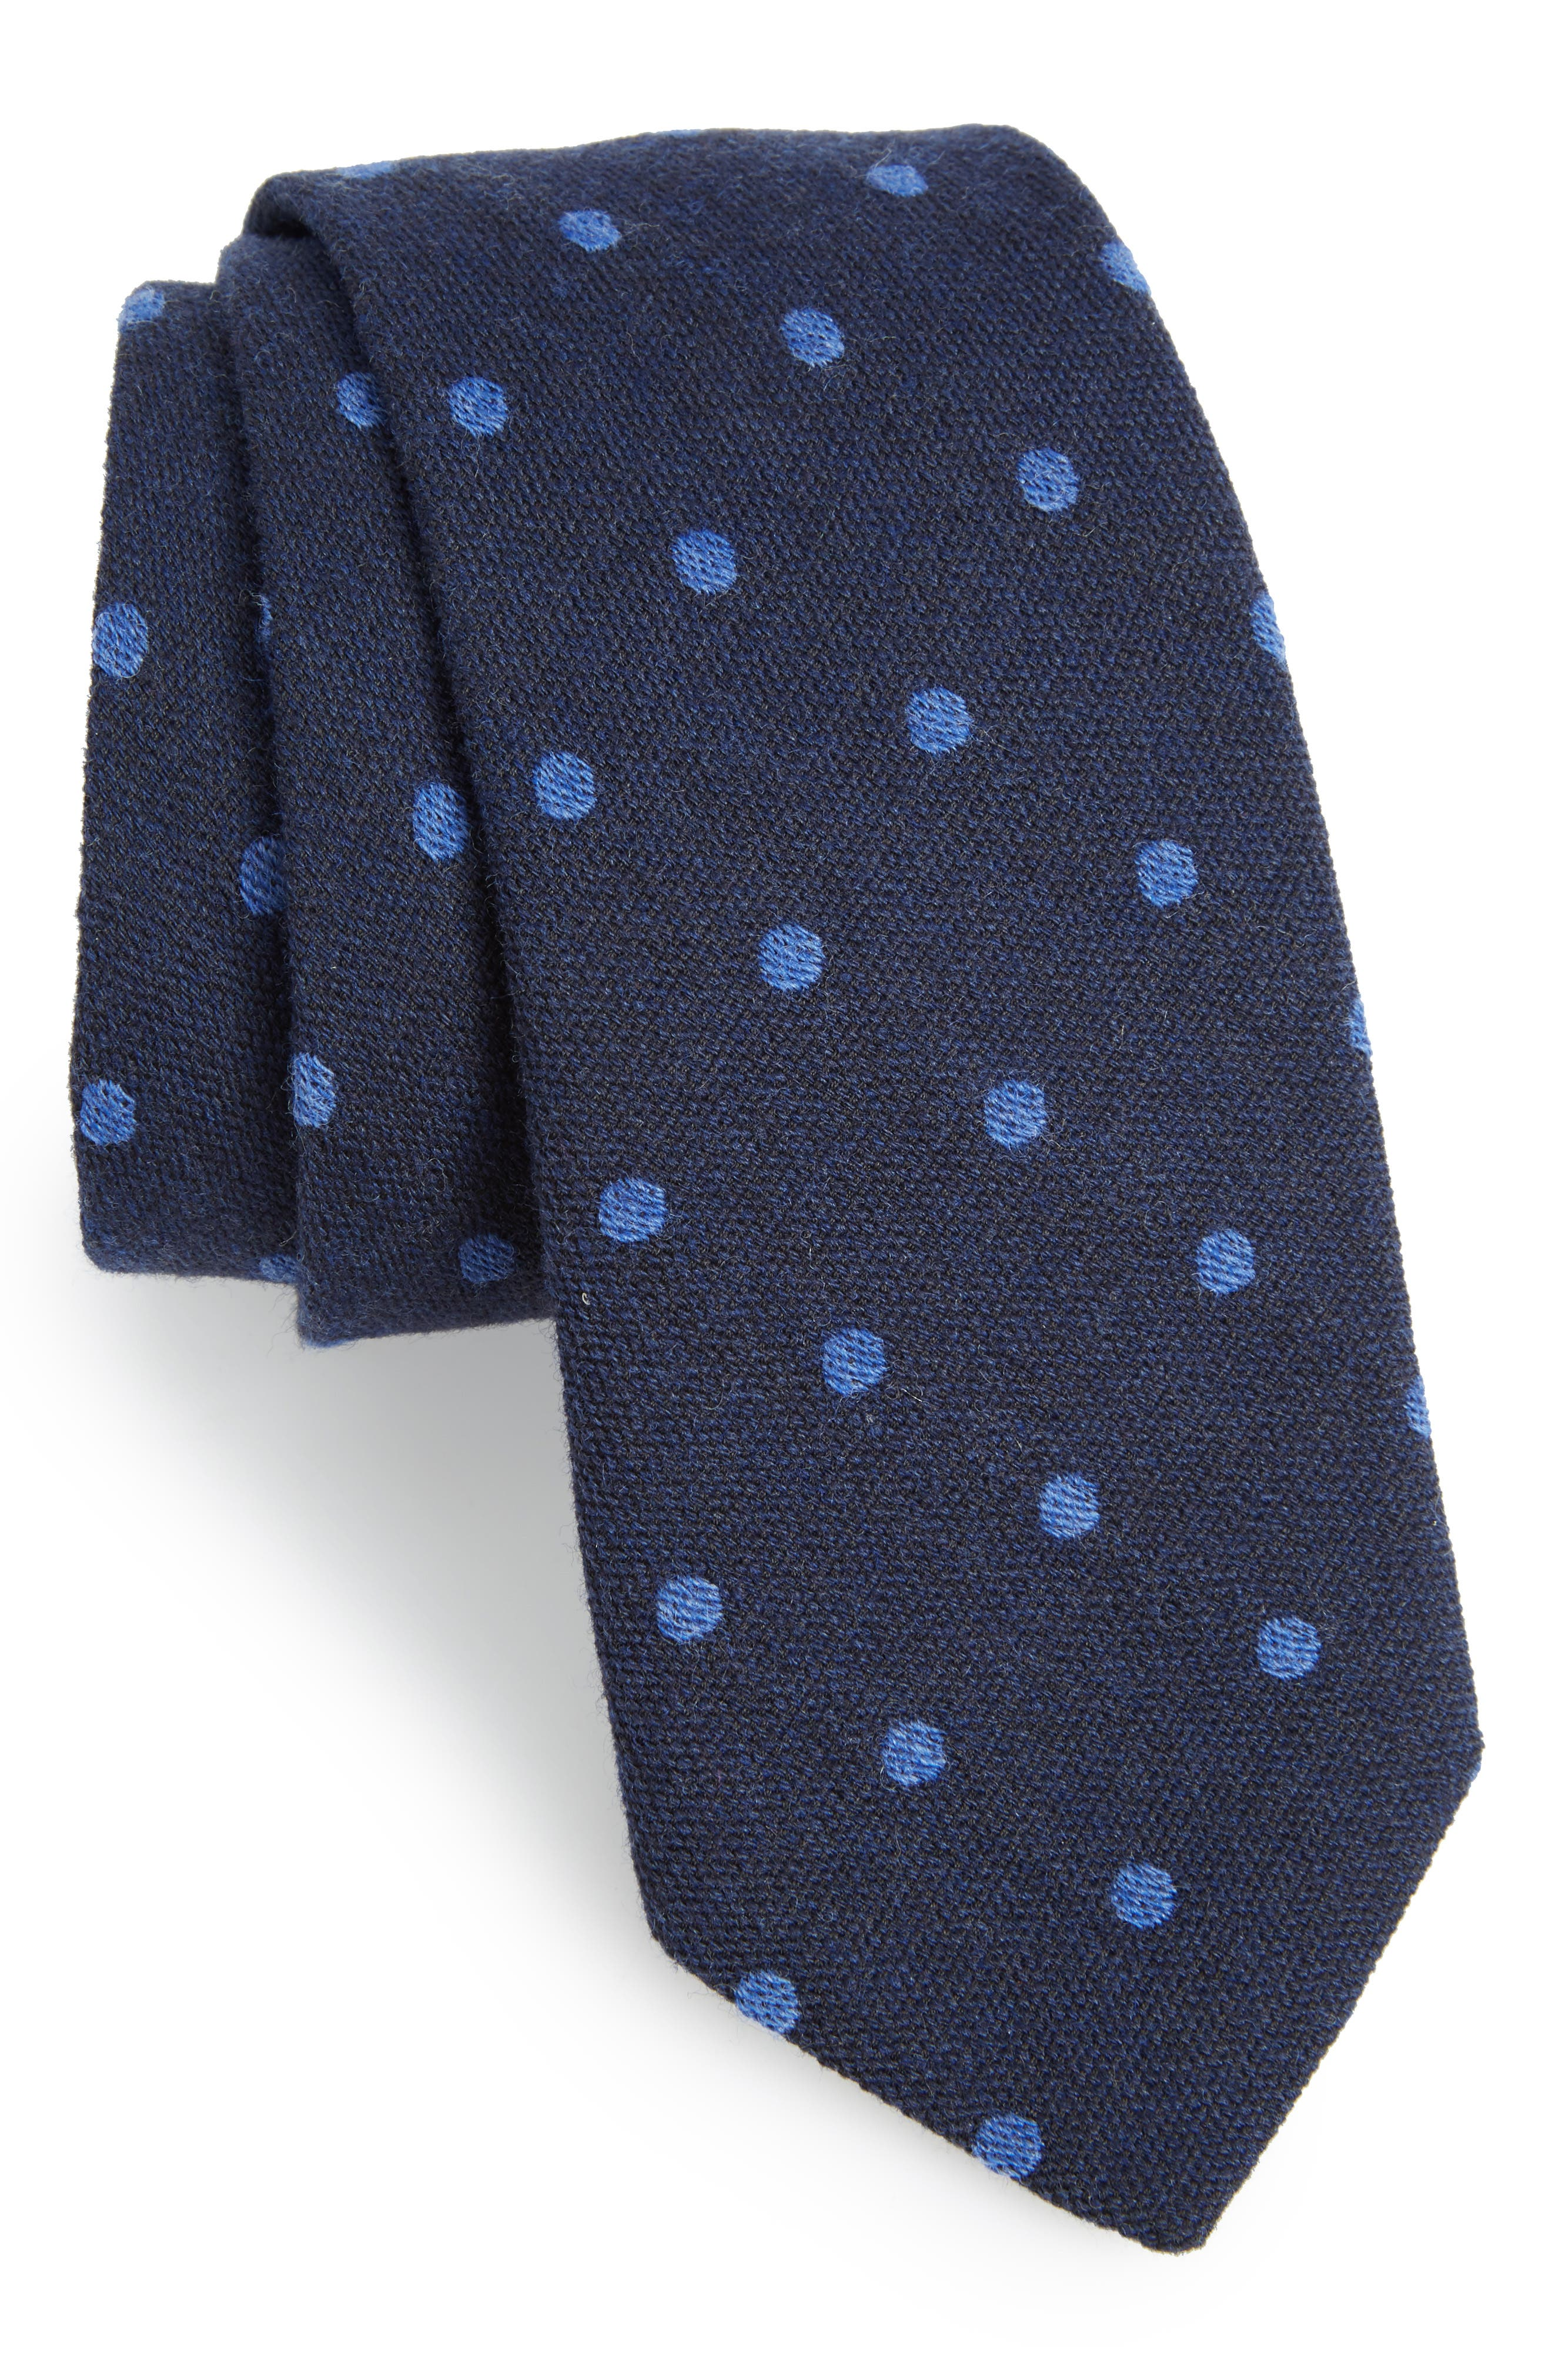 Newell Dot Wool Tie,                             Main thumbnail 1, color,                             400